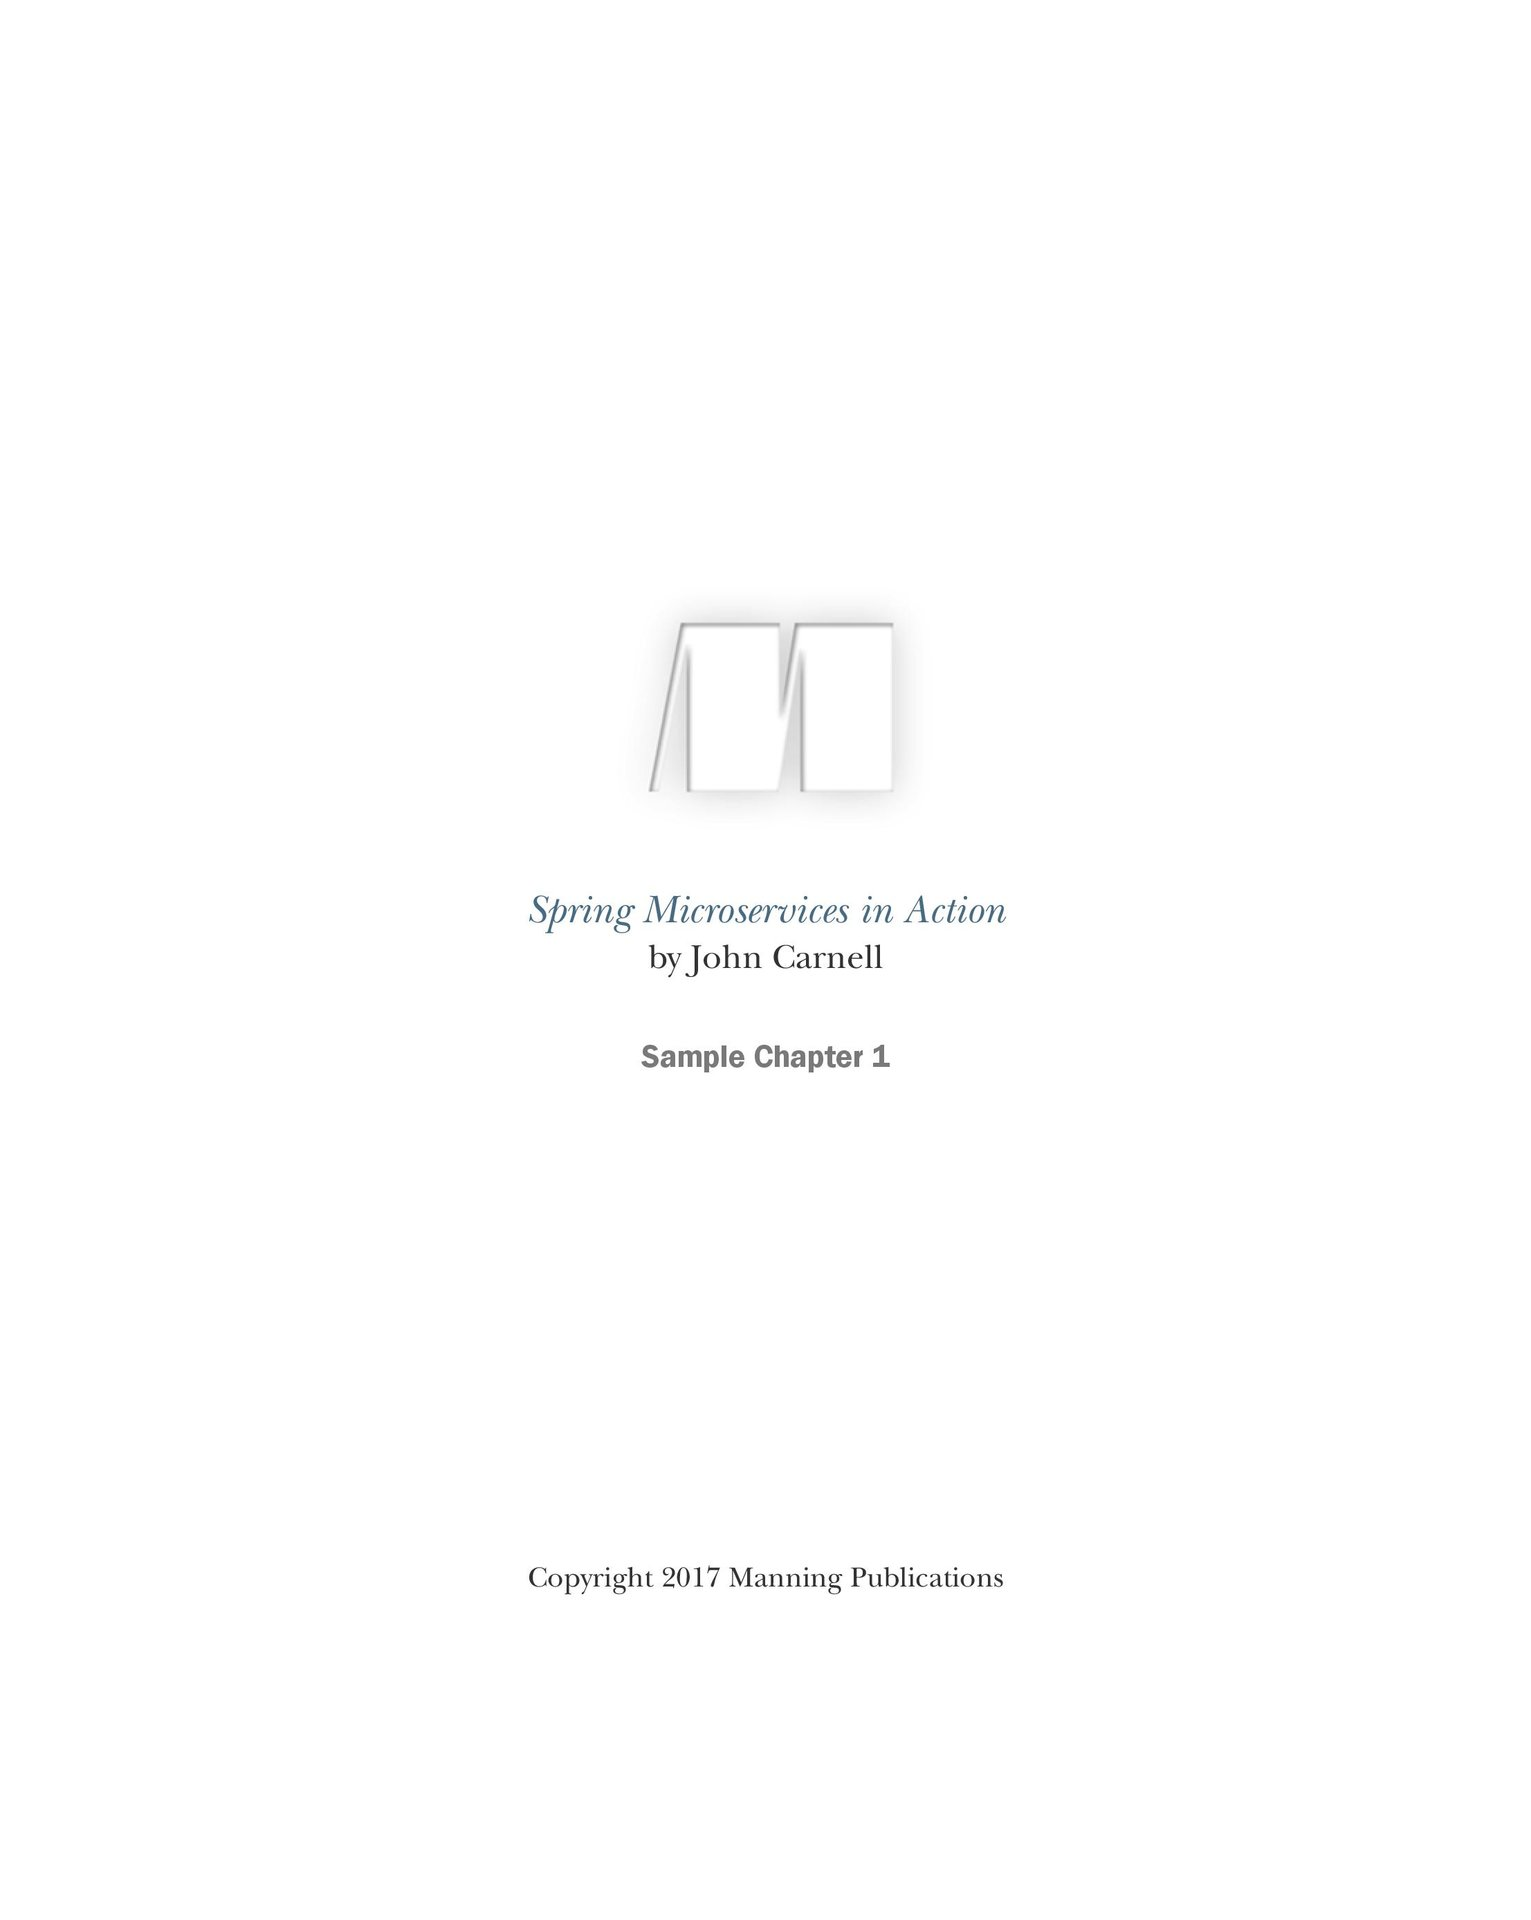 Spring Microservices in Action (Paperback)-preview-1